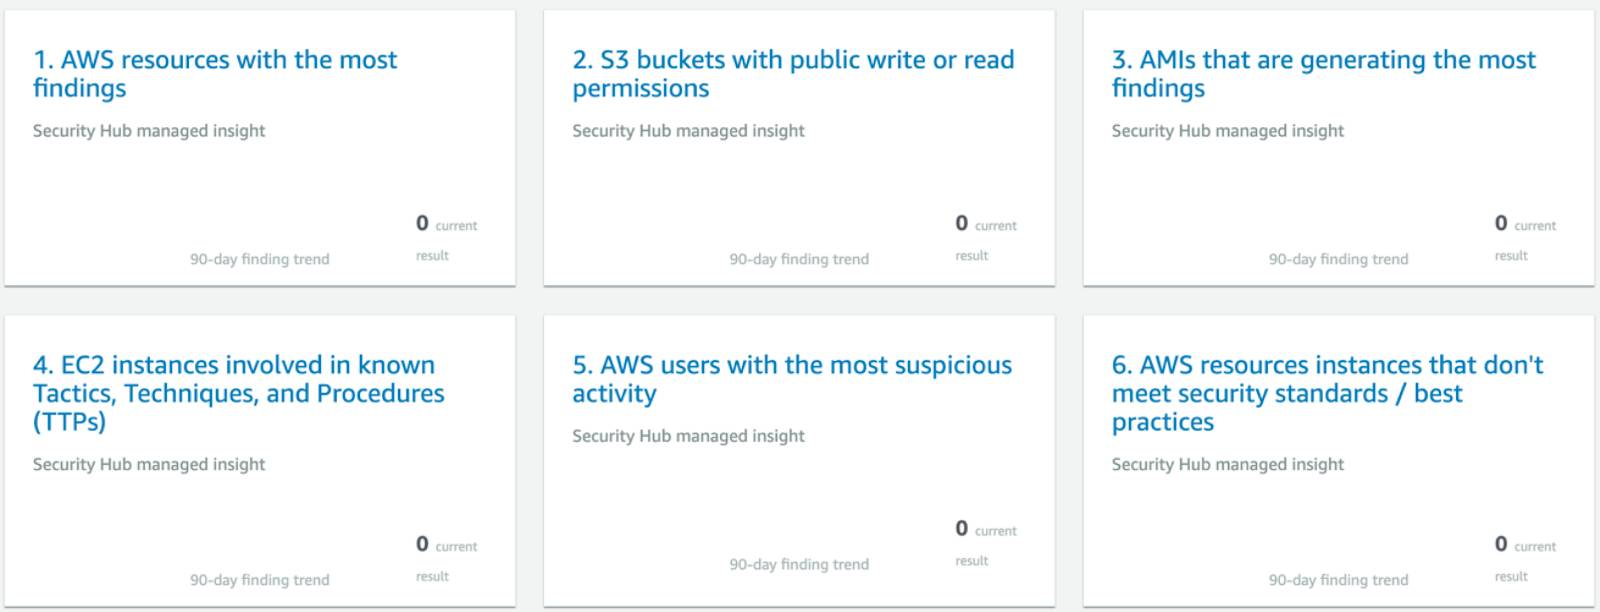 Screenshot of the Insights area within Security Hub, with the following sections: 1. AWS resources with the most findings; 2. S3 buckets with public write or read permissions; 3. AMIs that are generating the most findings; 4. EC2 instances involved in known Tactics, Techniques, and Procedures (TTPs); 5. AWS users with the most suspicious activity; 6. AWS resources instances that don't meet security standards / best practices